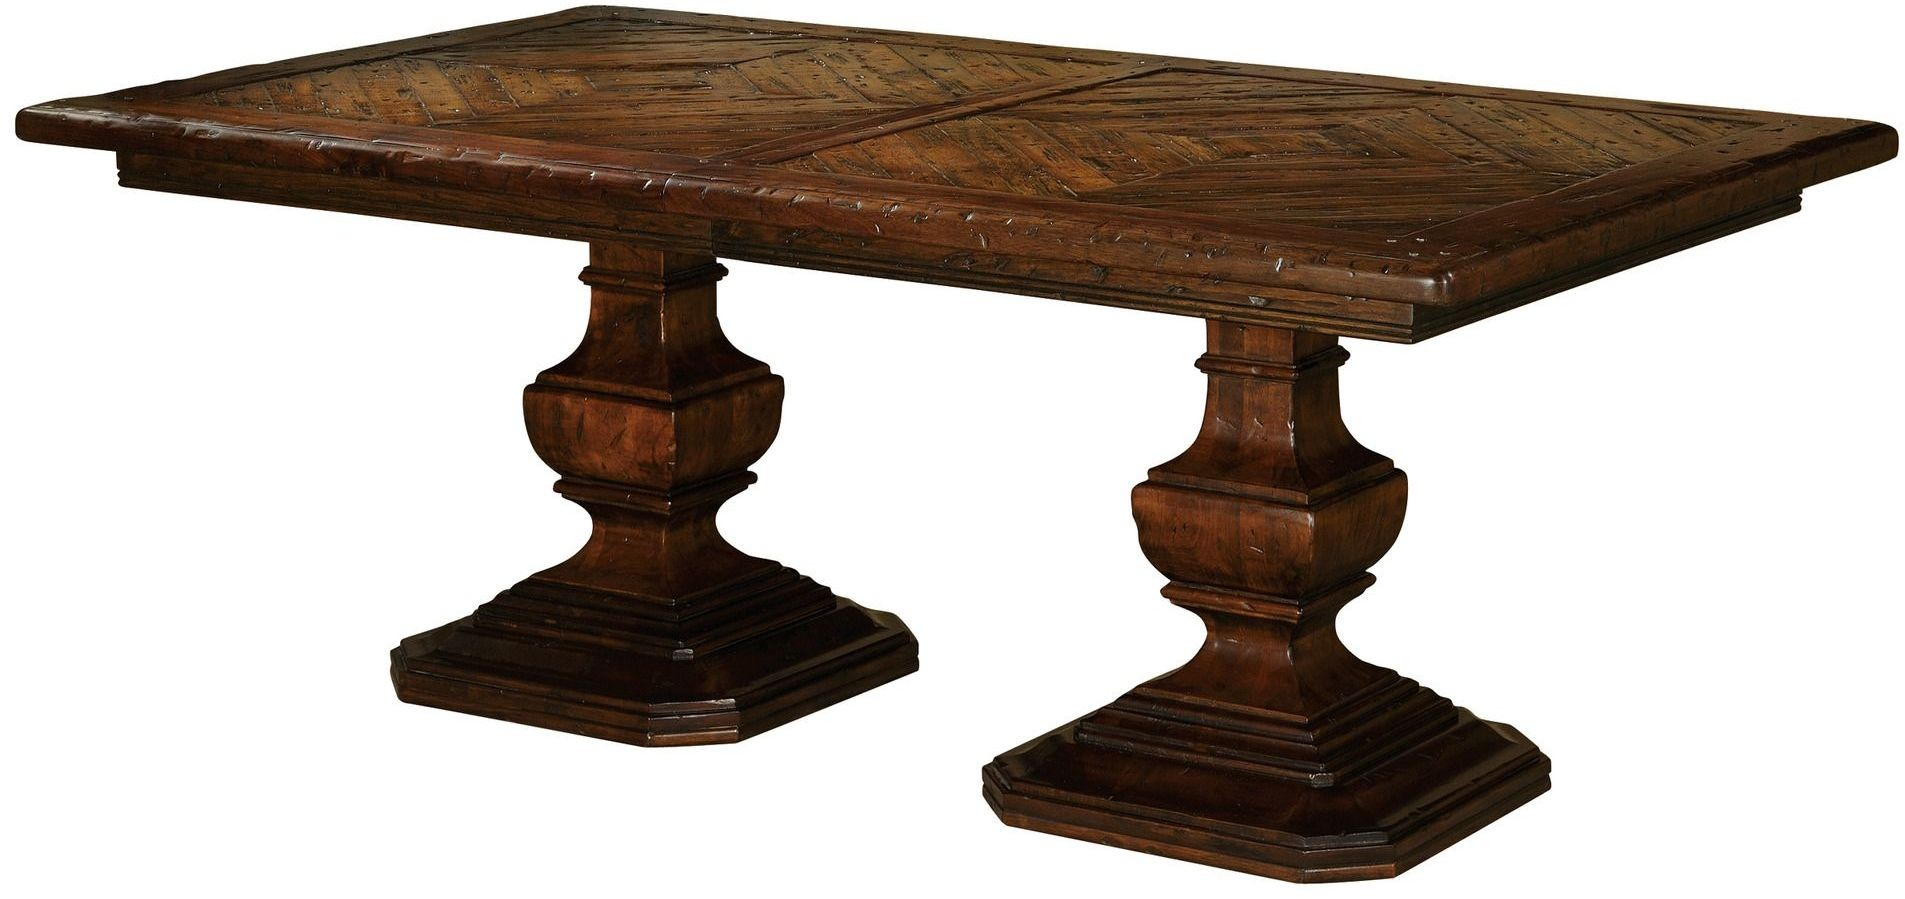 Rue de bac cognac extendable pedestal dining table from for Pedestal table